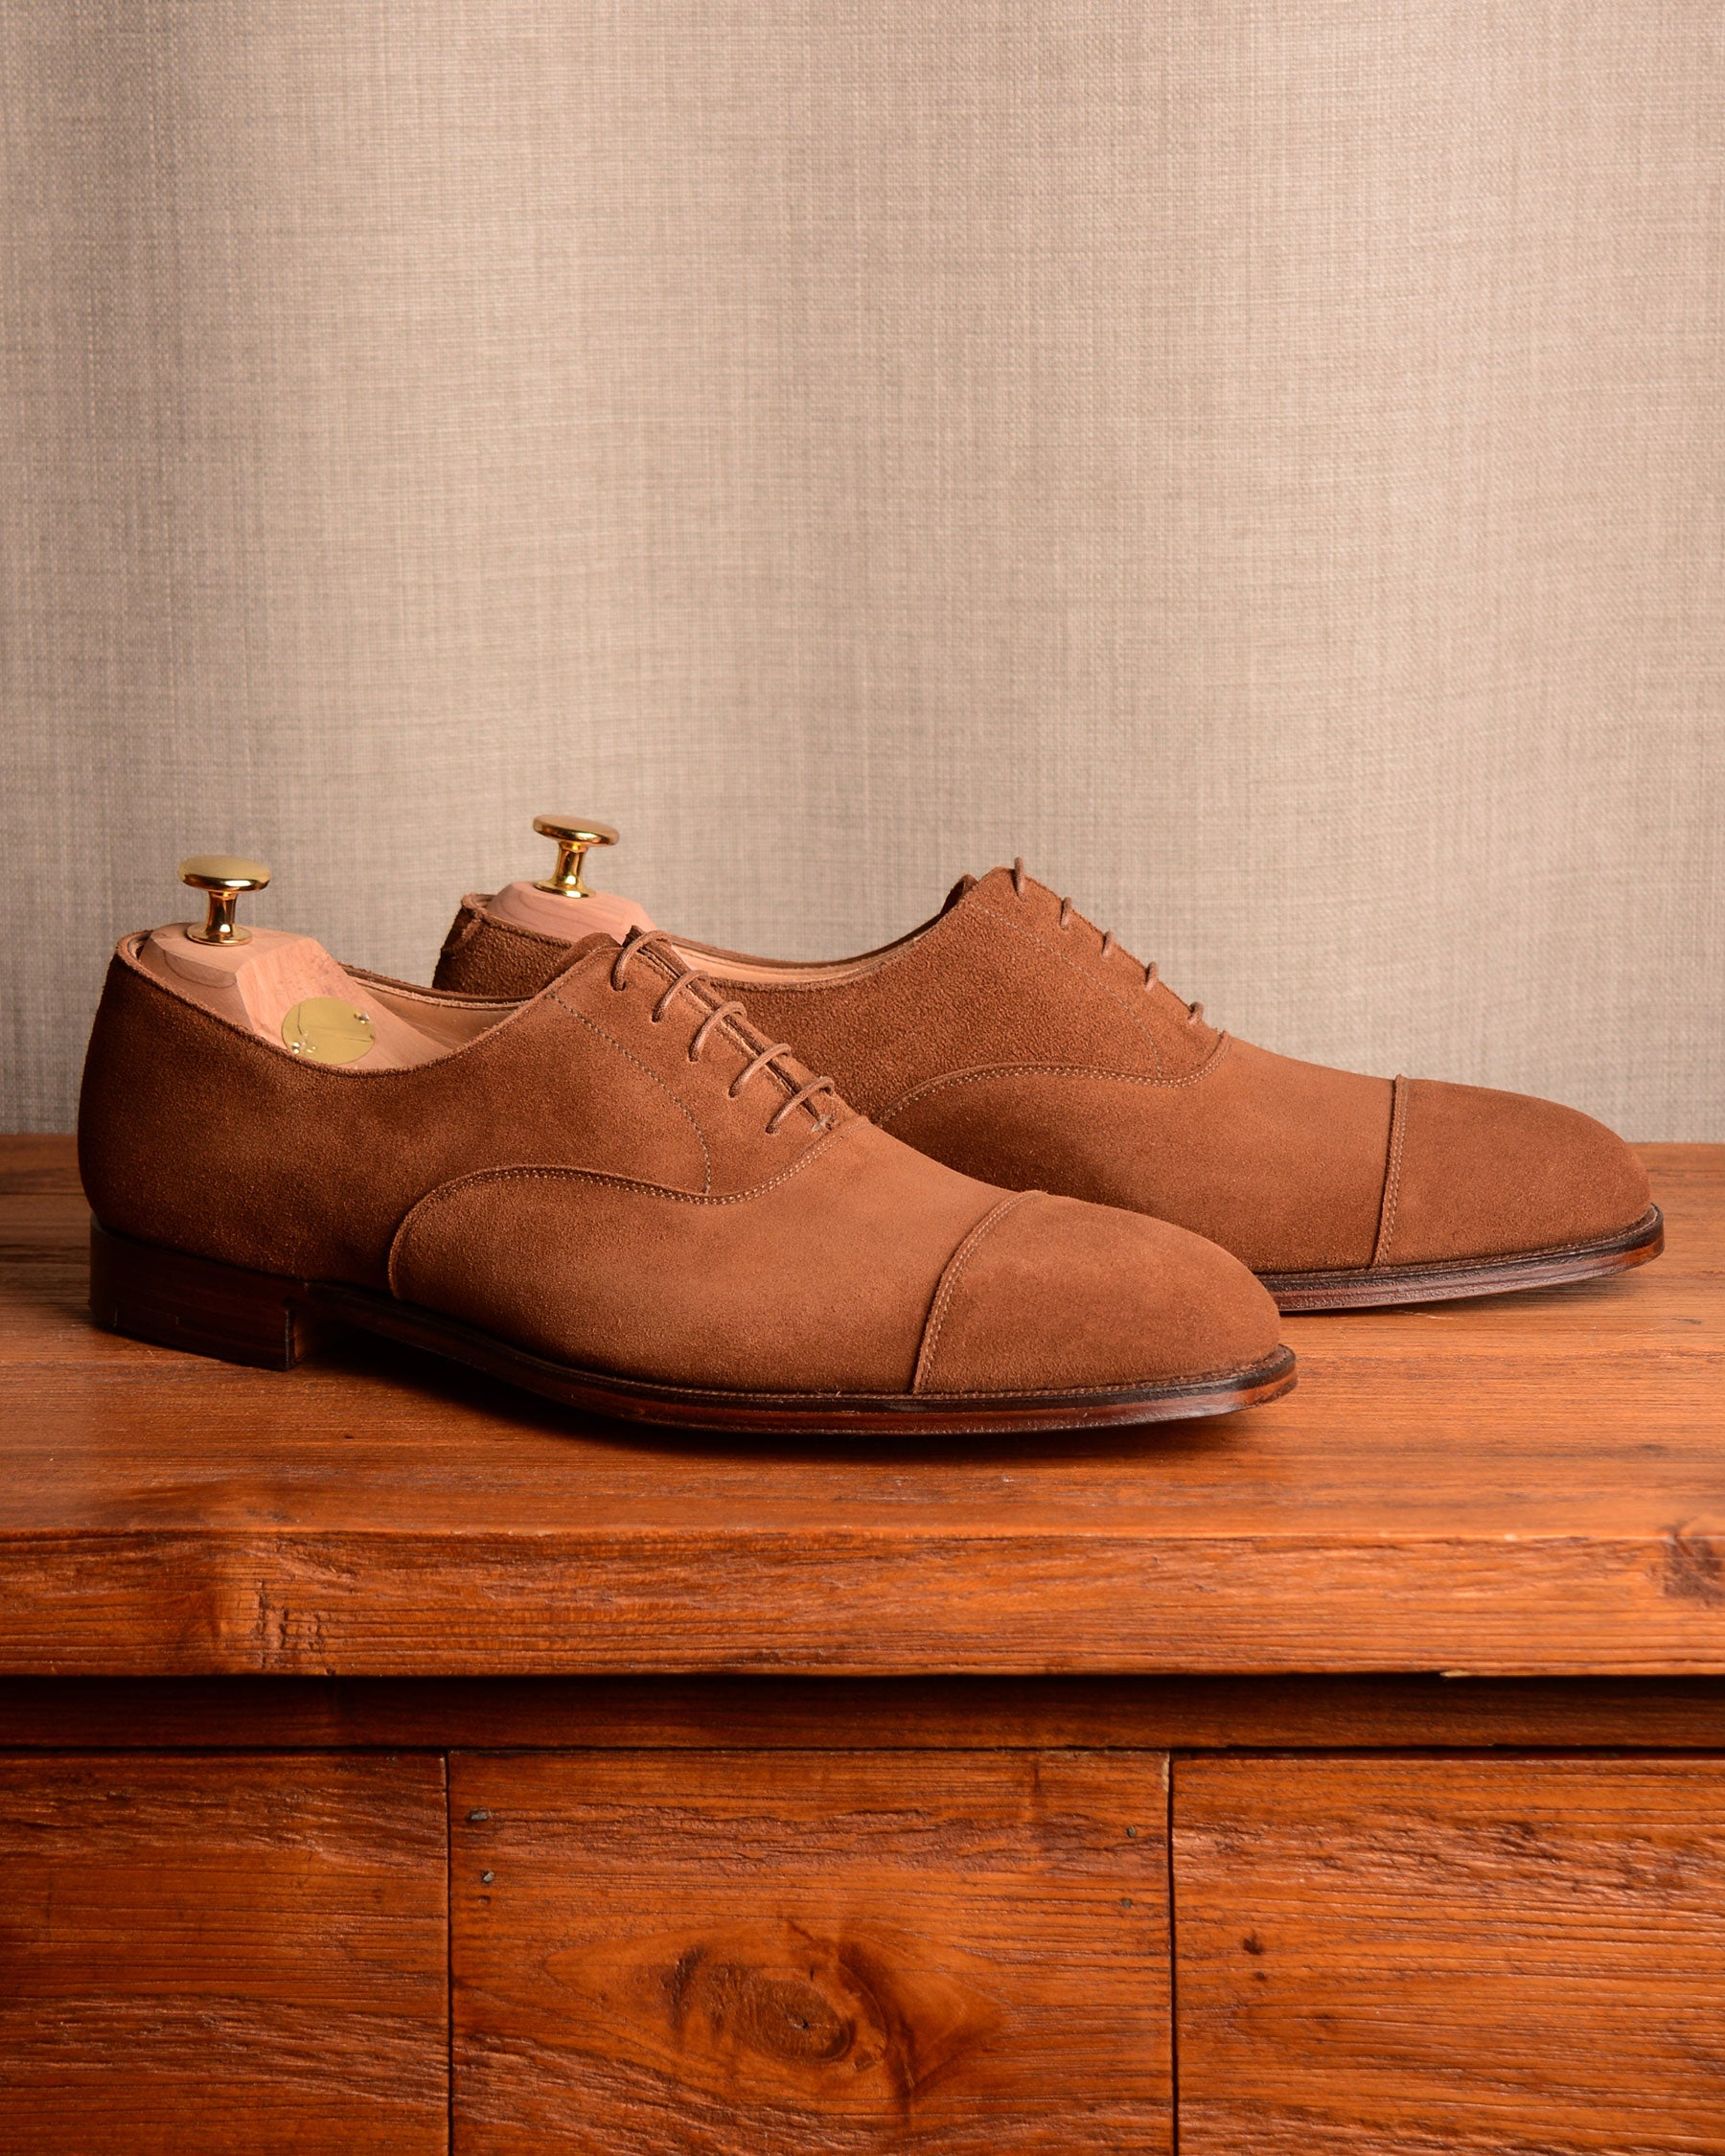 Crockett & Jones Dorset 2 - Polo Suede